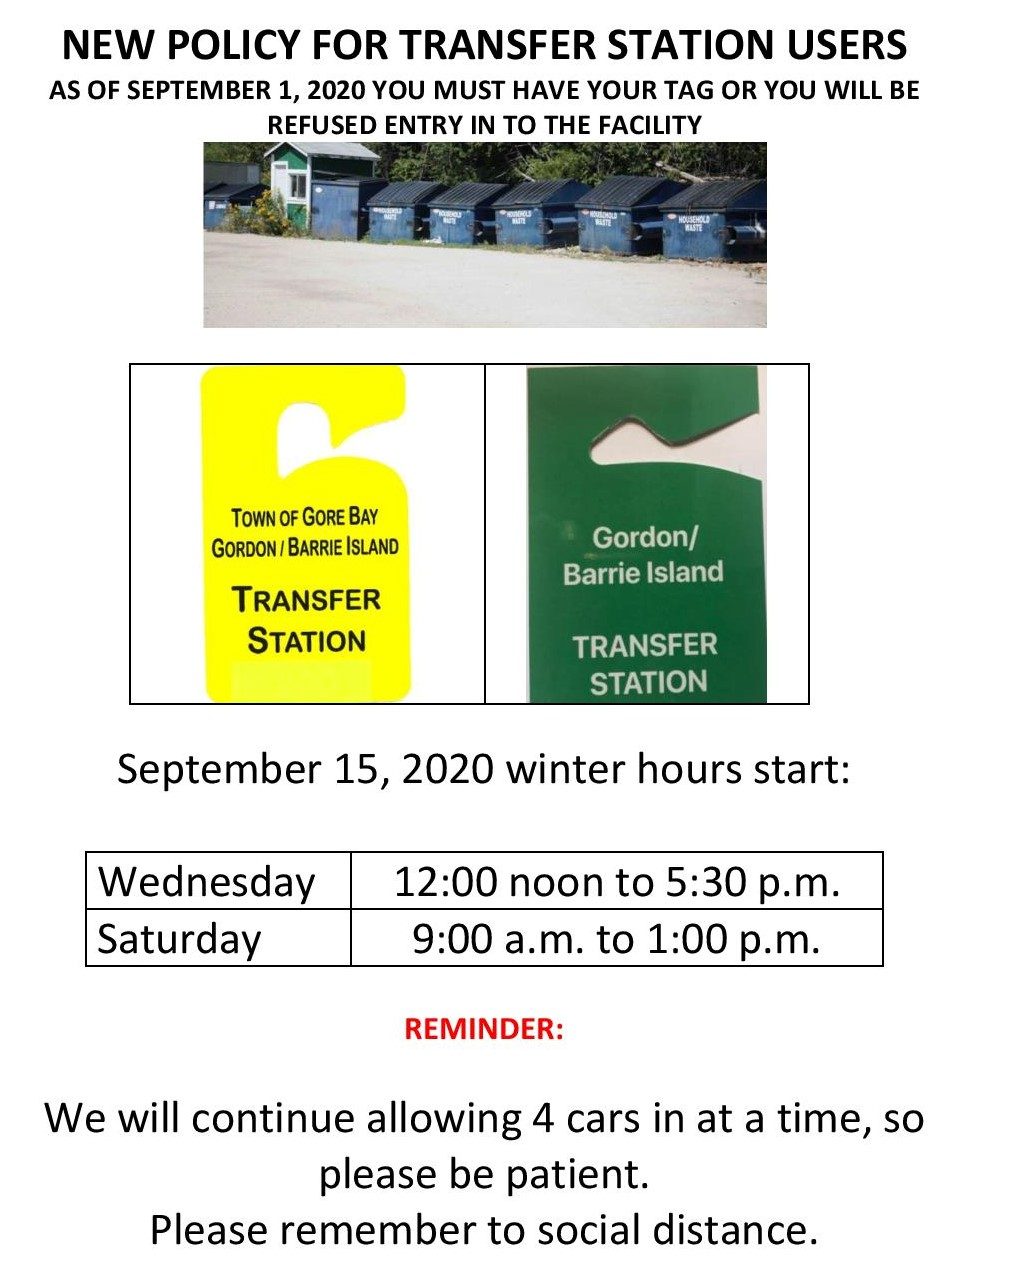 Transfer Station New Policy as of September 1, 2020